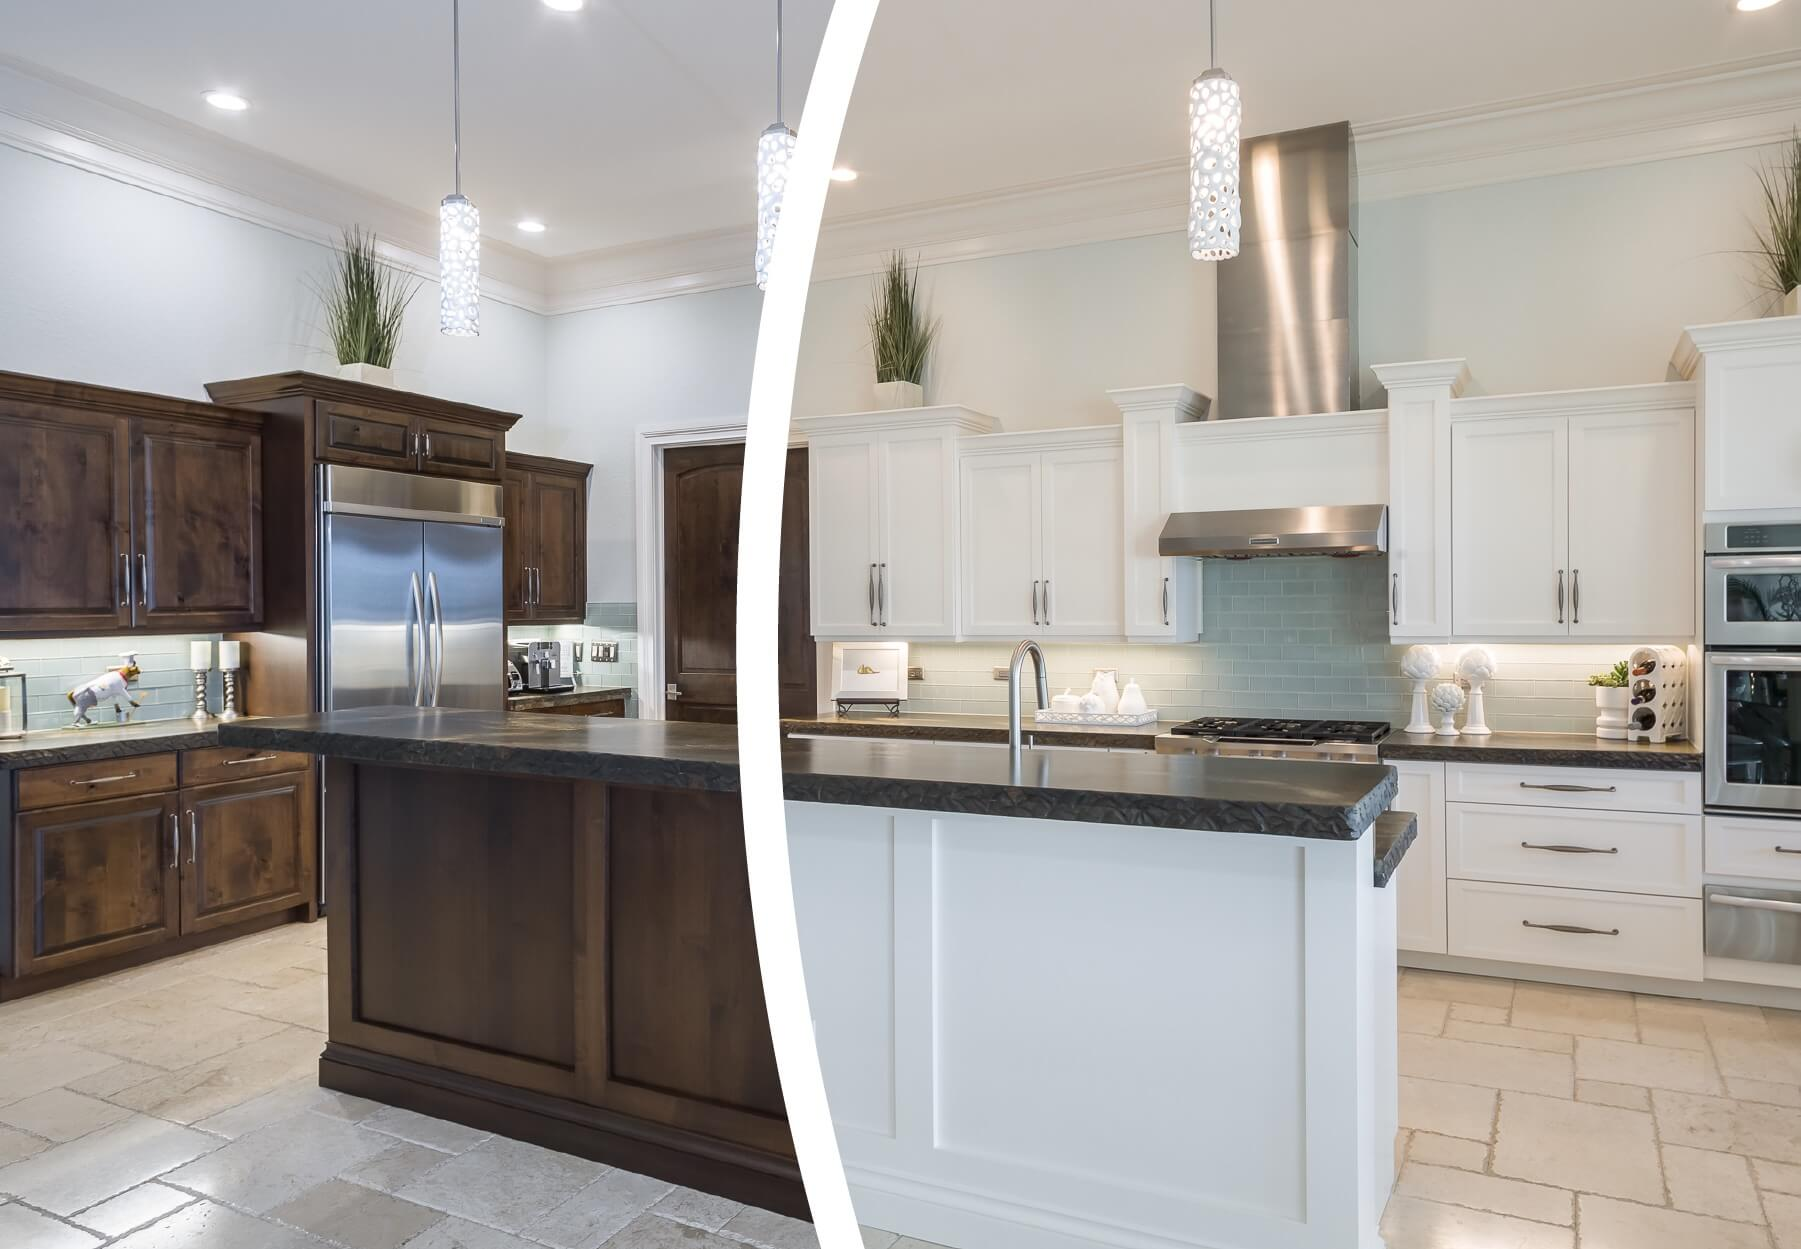 Cabinet Refinishing-San Marcos TX Professional Painting Contractors-We offer Residential & Commercial Painting, Interior Painting, Exterior Painting, Primer Painting, Industrial Painting, Professional Painters, Institutional Painters, and more.